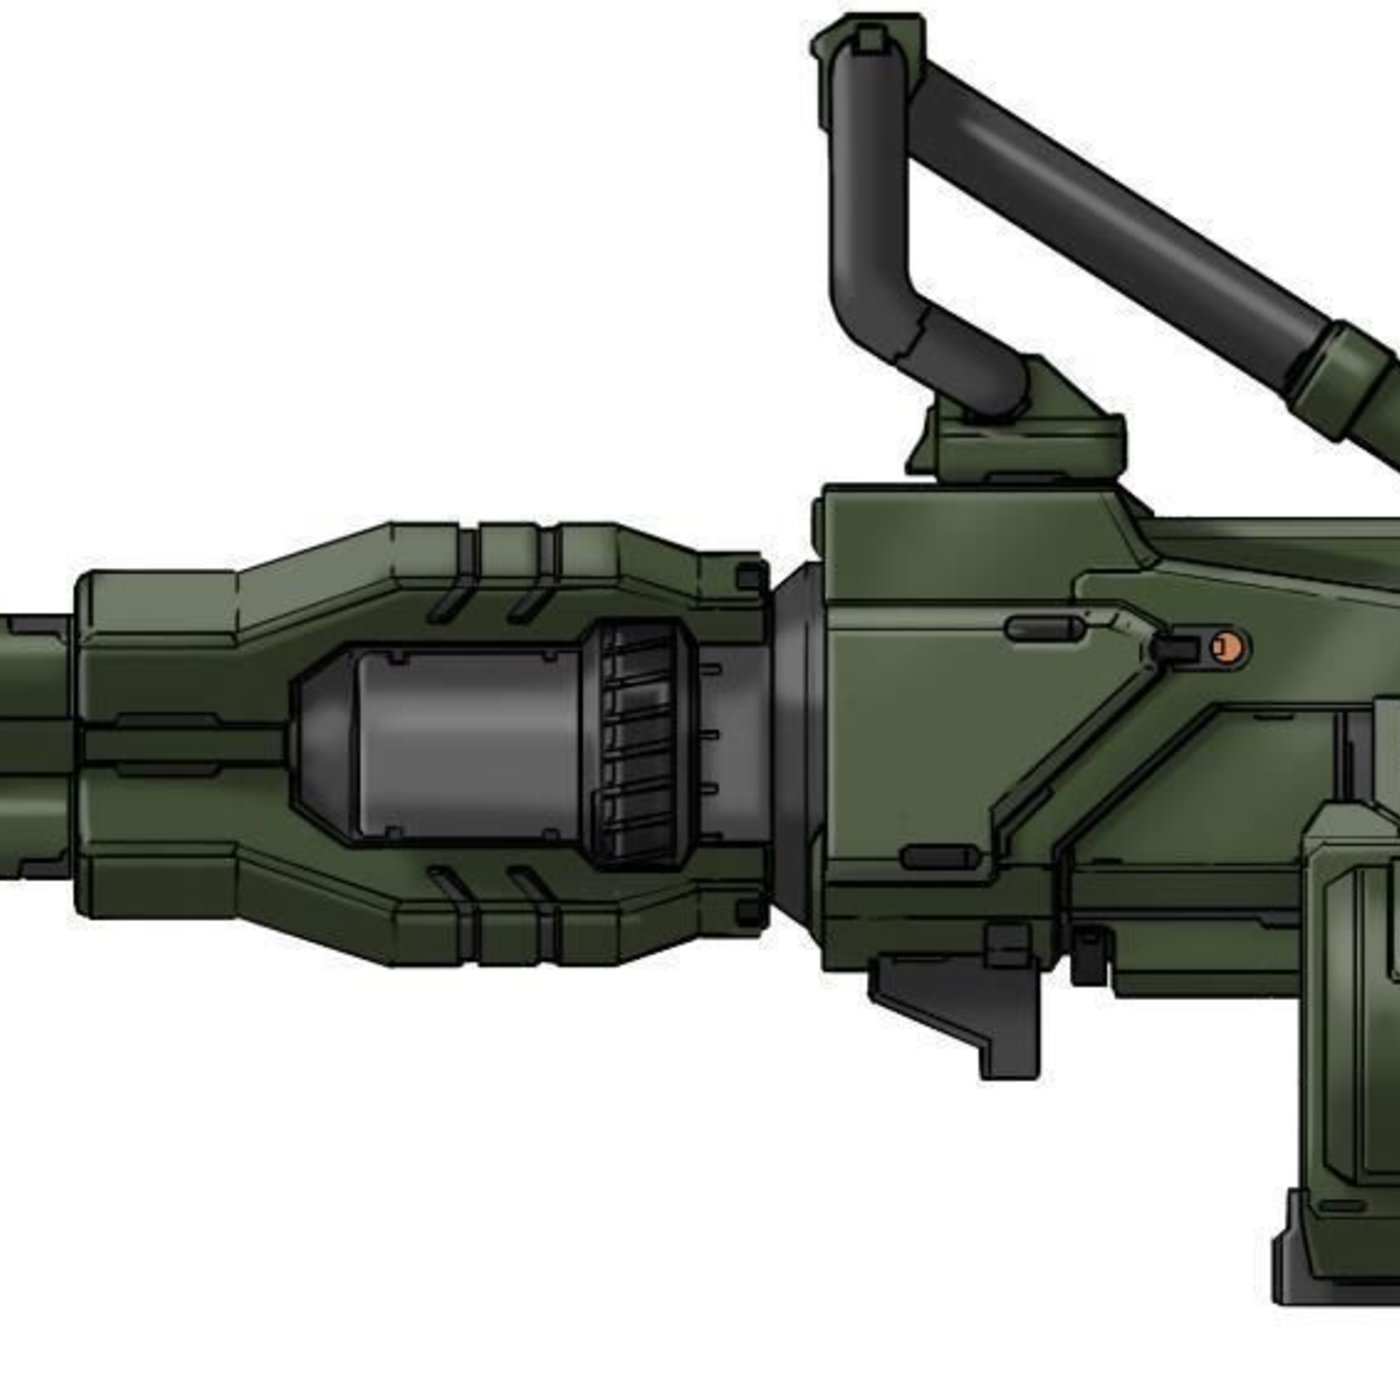 GUNFORGE weapon constructor